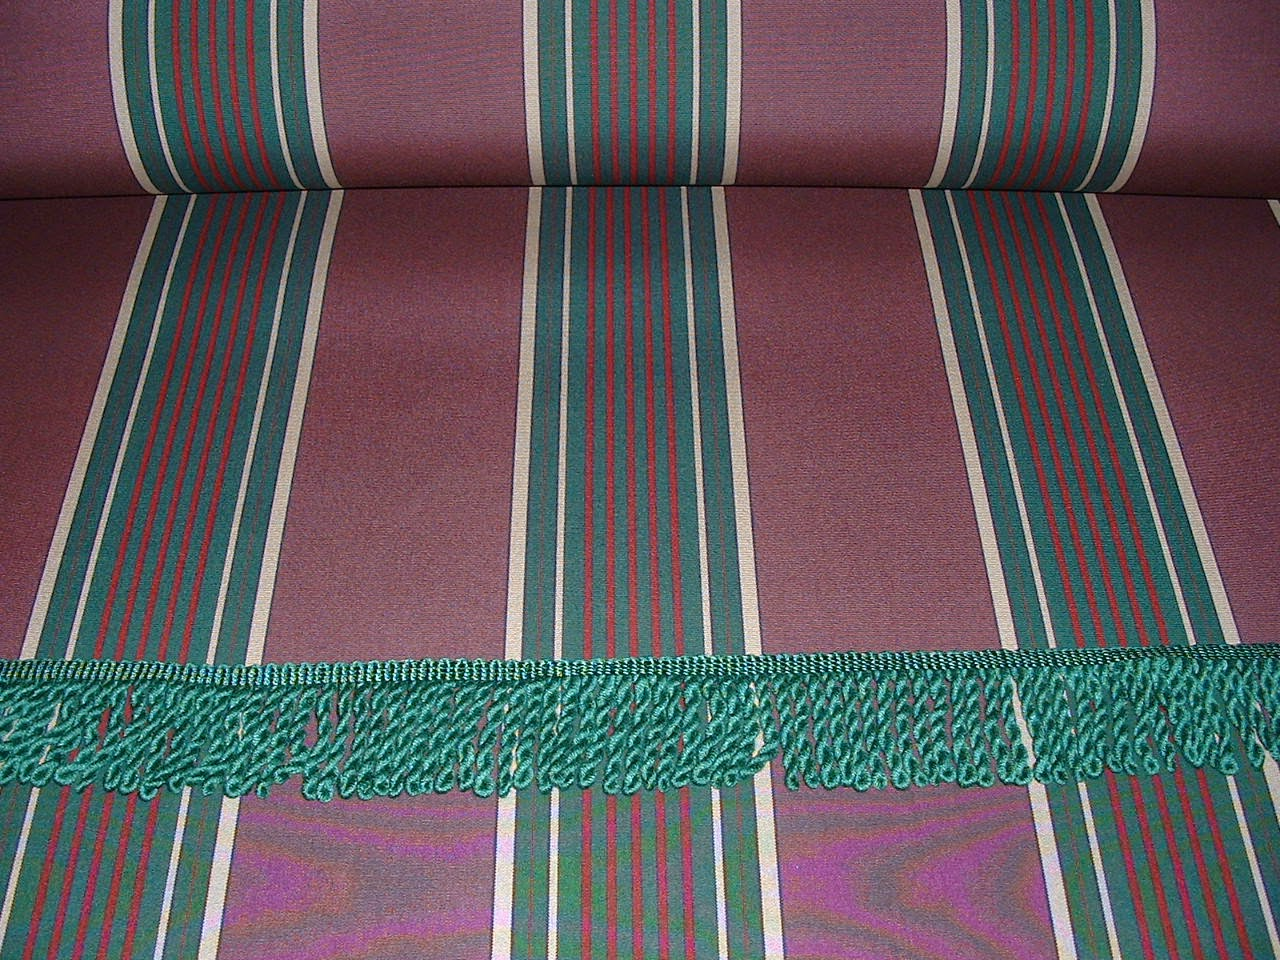 Vintage Awnings Bits And Pieces Of Awning Fabric And